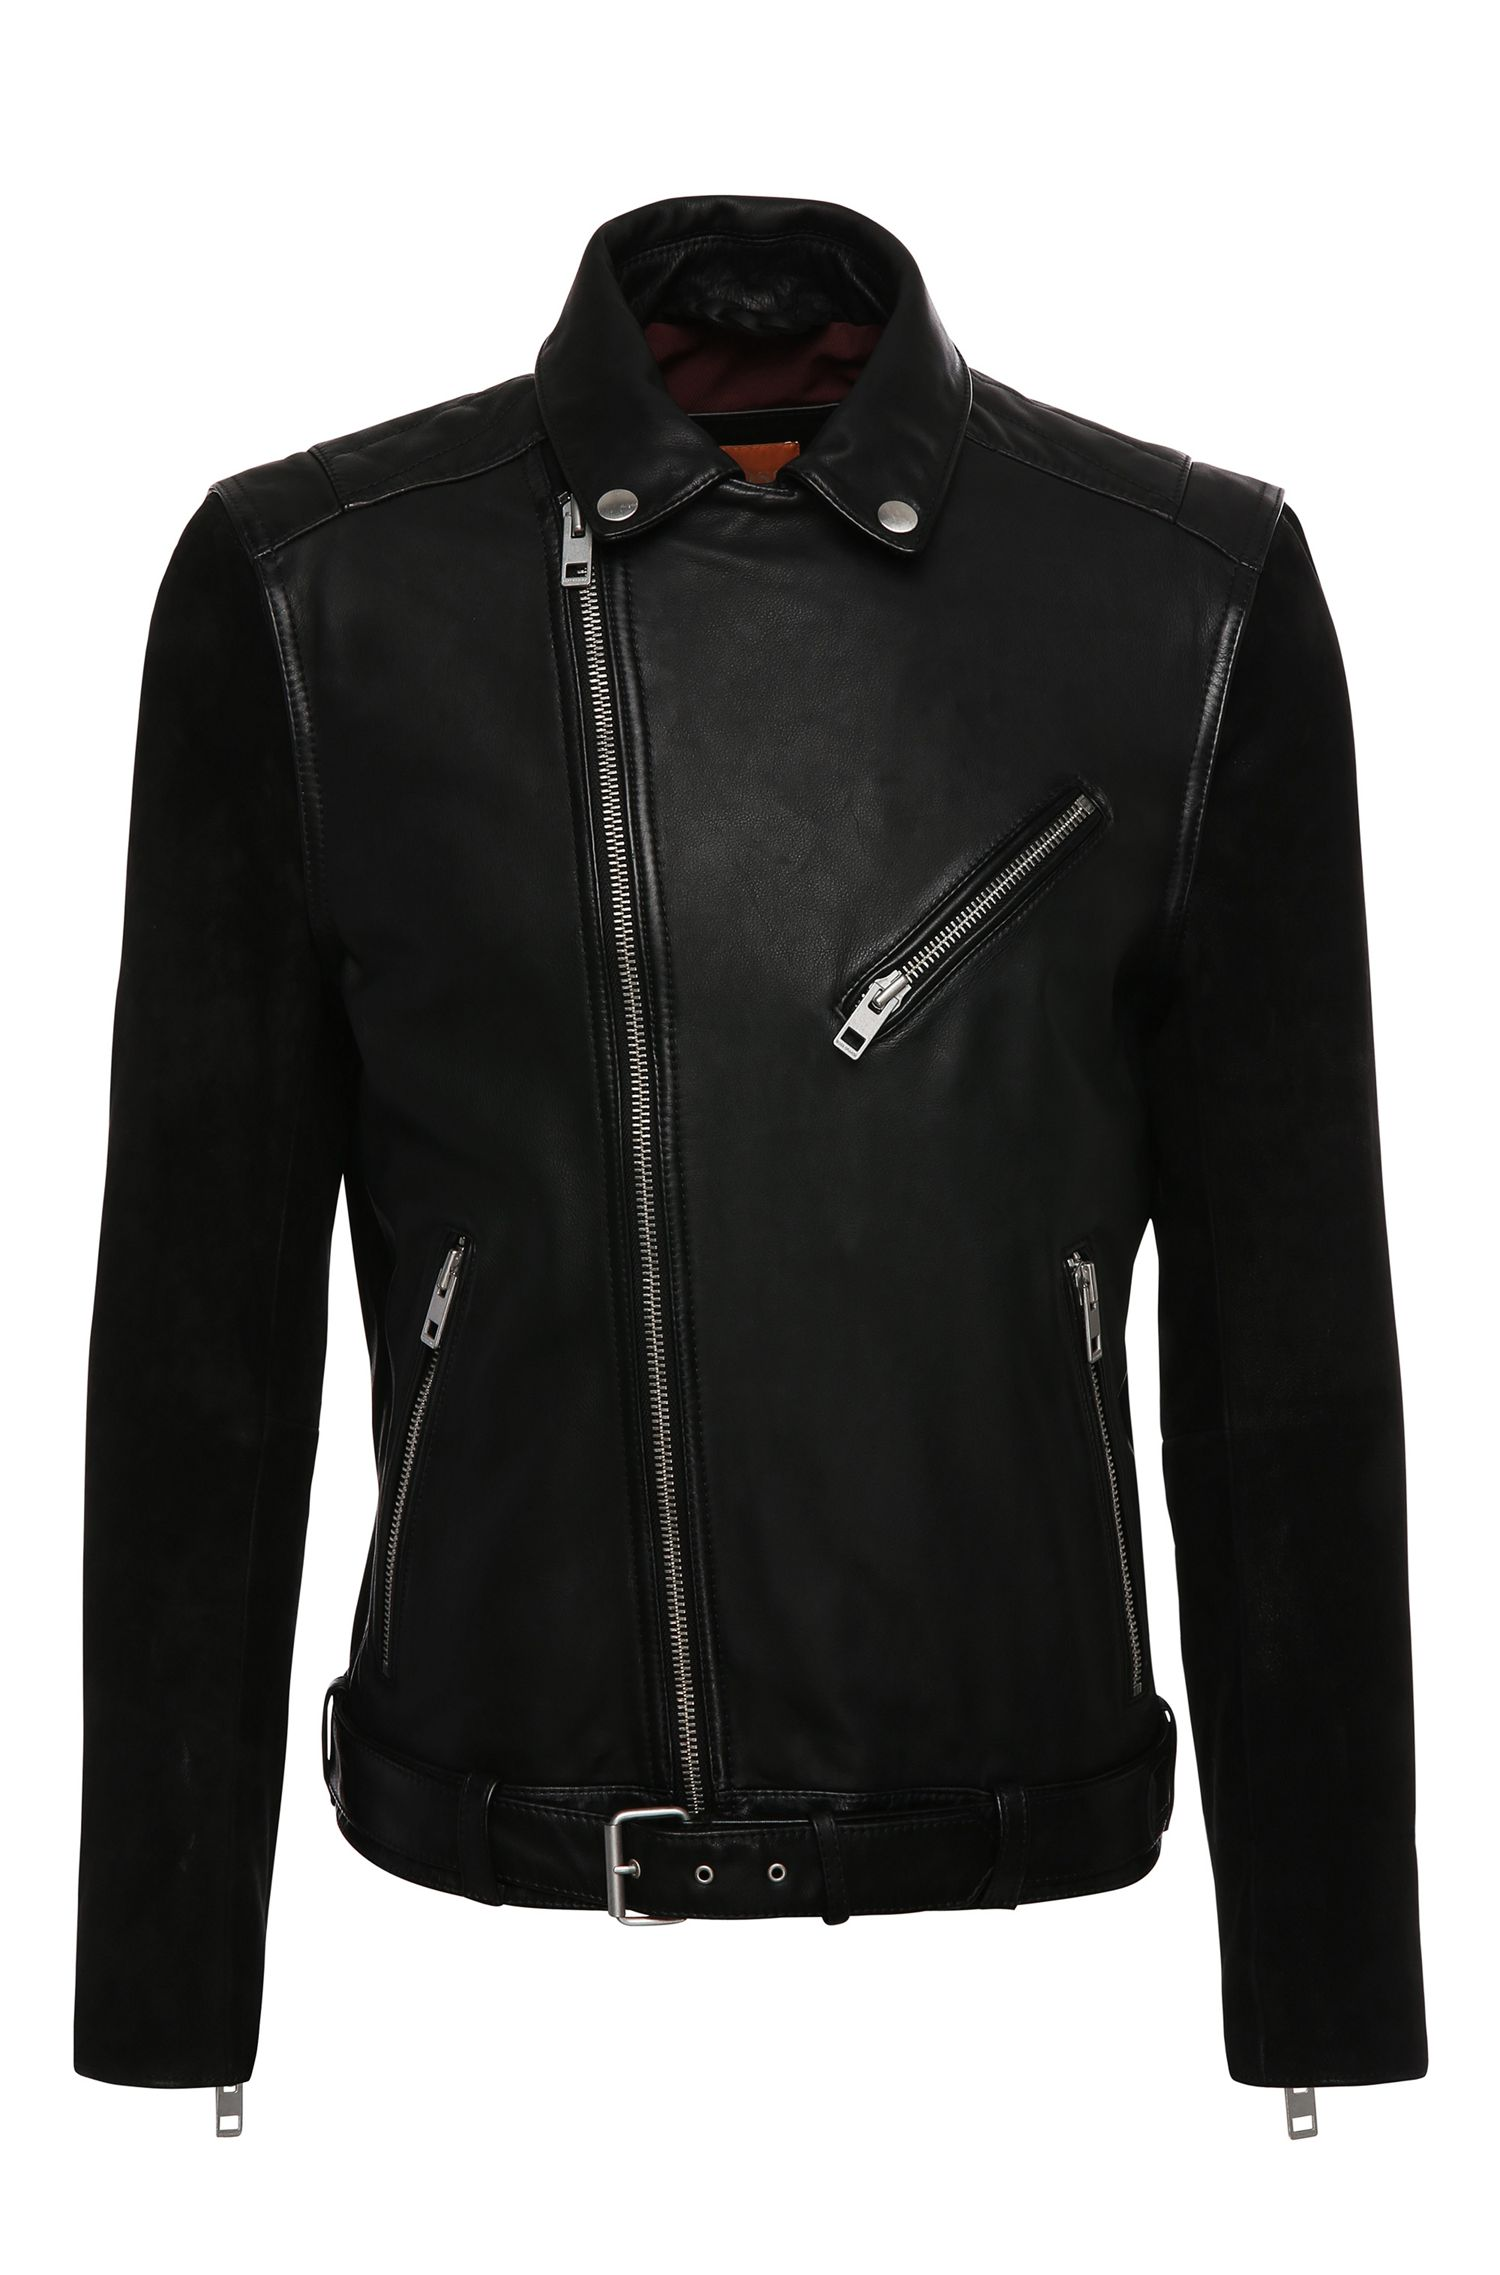 'Jetz' | Mixed Media Leather Biker Jacket